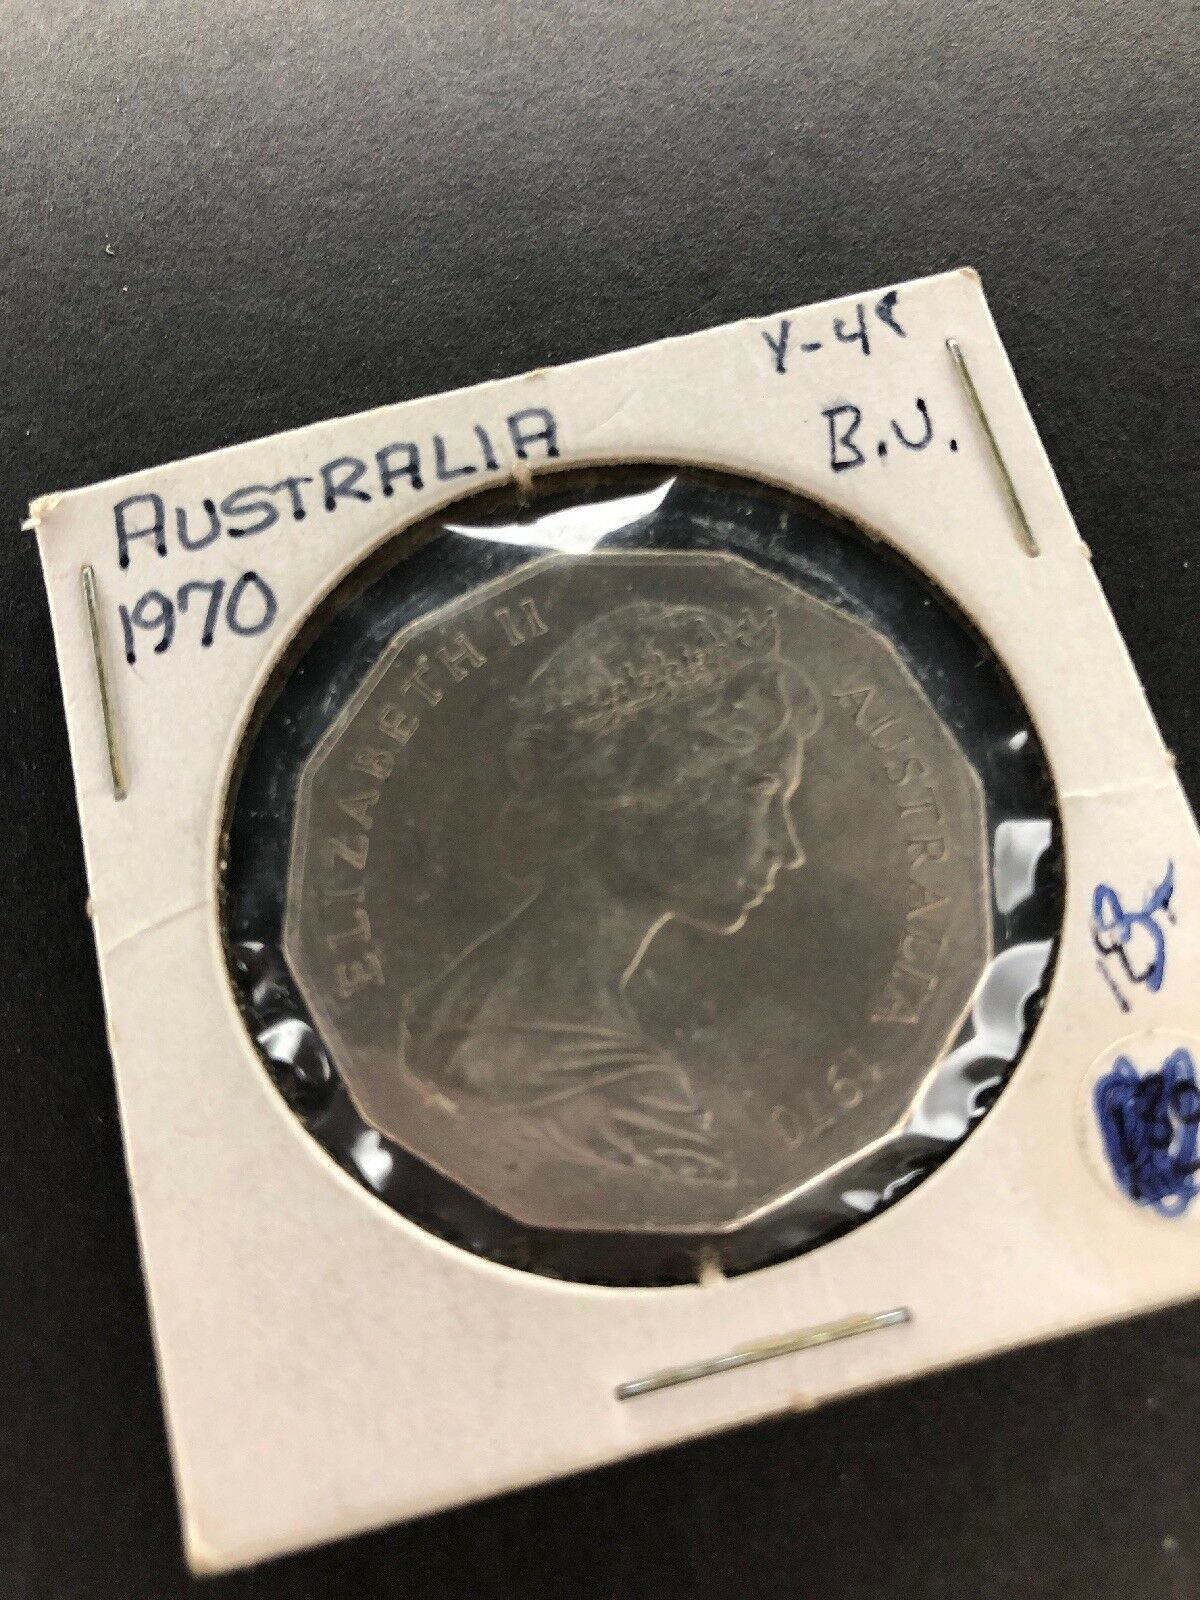 Australia 50 Cents 1970 Gem BU 50c Captain James Cook Botany Bay April 1770.